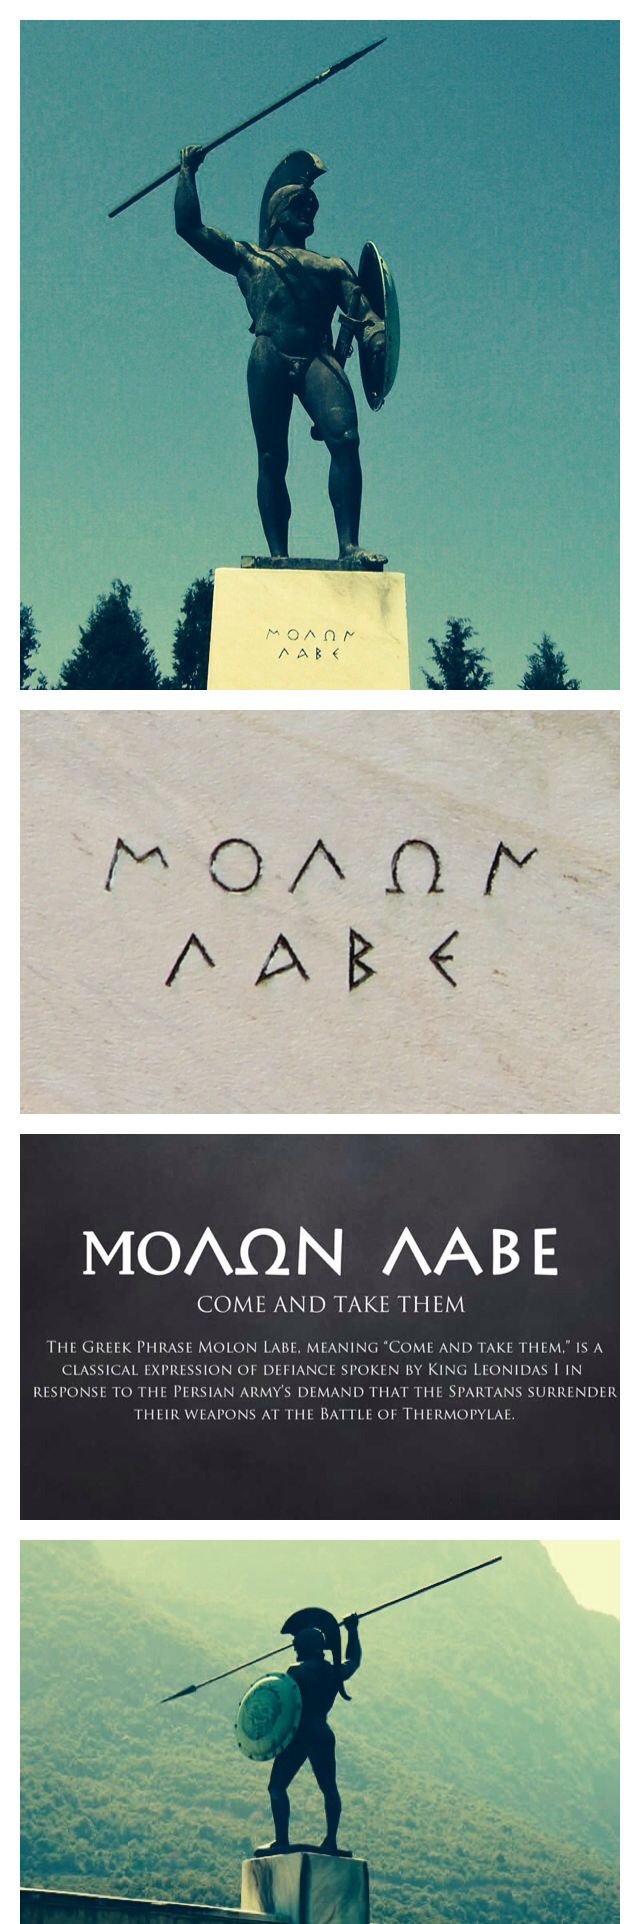 """The words """"ΜΟΛΩΝ ΛΑΒΕ"""" as they are inscribed on the marble of the 1955 Leonidas Monument at Thermopylae.  Molon labe (Greek: μολὼν λαβέ molṑn labé; Ancient Greek: [molɔːn labé]; Modern Greek: [moˈlon laˈve]), lit. """"come and take"""", is a classical expression of defiance reportedly spoken by King Leonidas I in response to the Persian army's demand that the Spartans surrender their weapons at the Battle of Thermopylae. It is an exemplary use of a laconic phrase."""